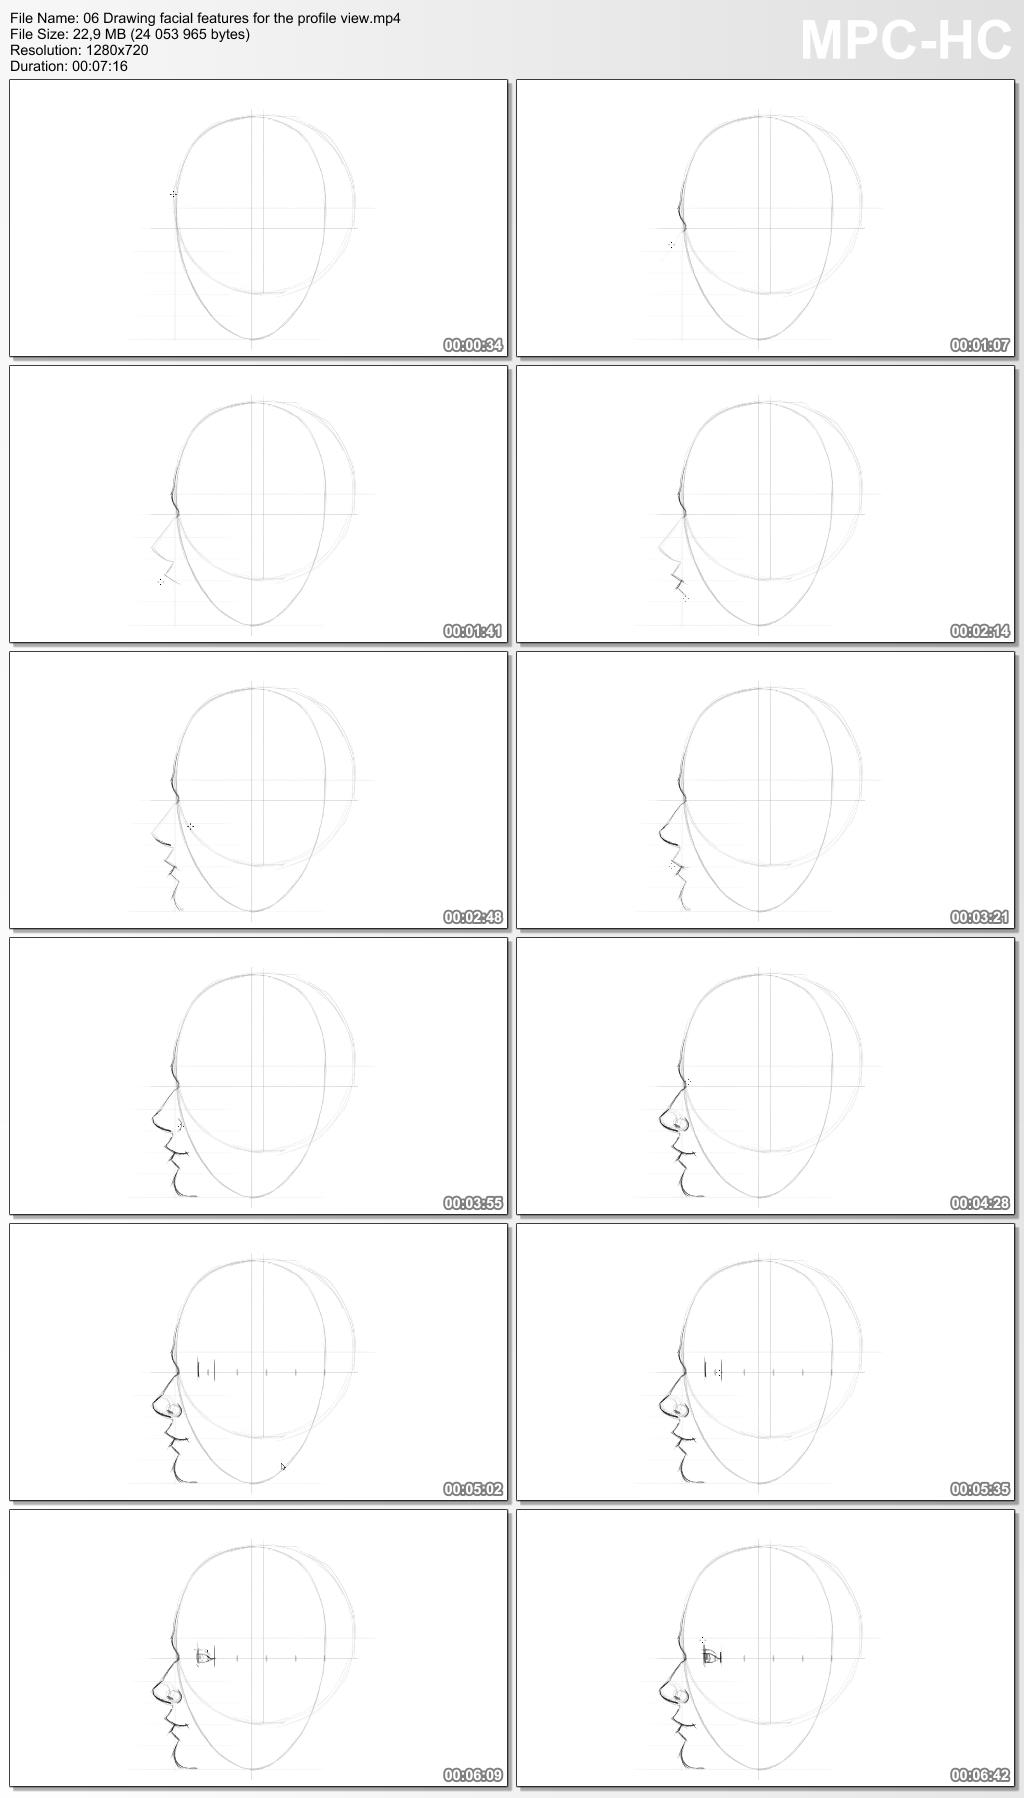 Dixxl Tuxxs - Methods for Drawing the Human Head